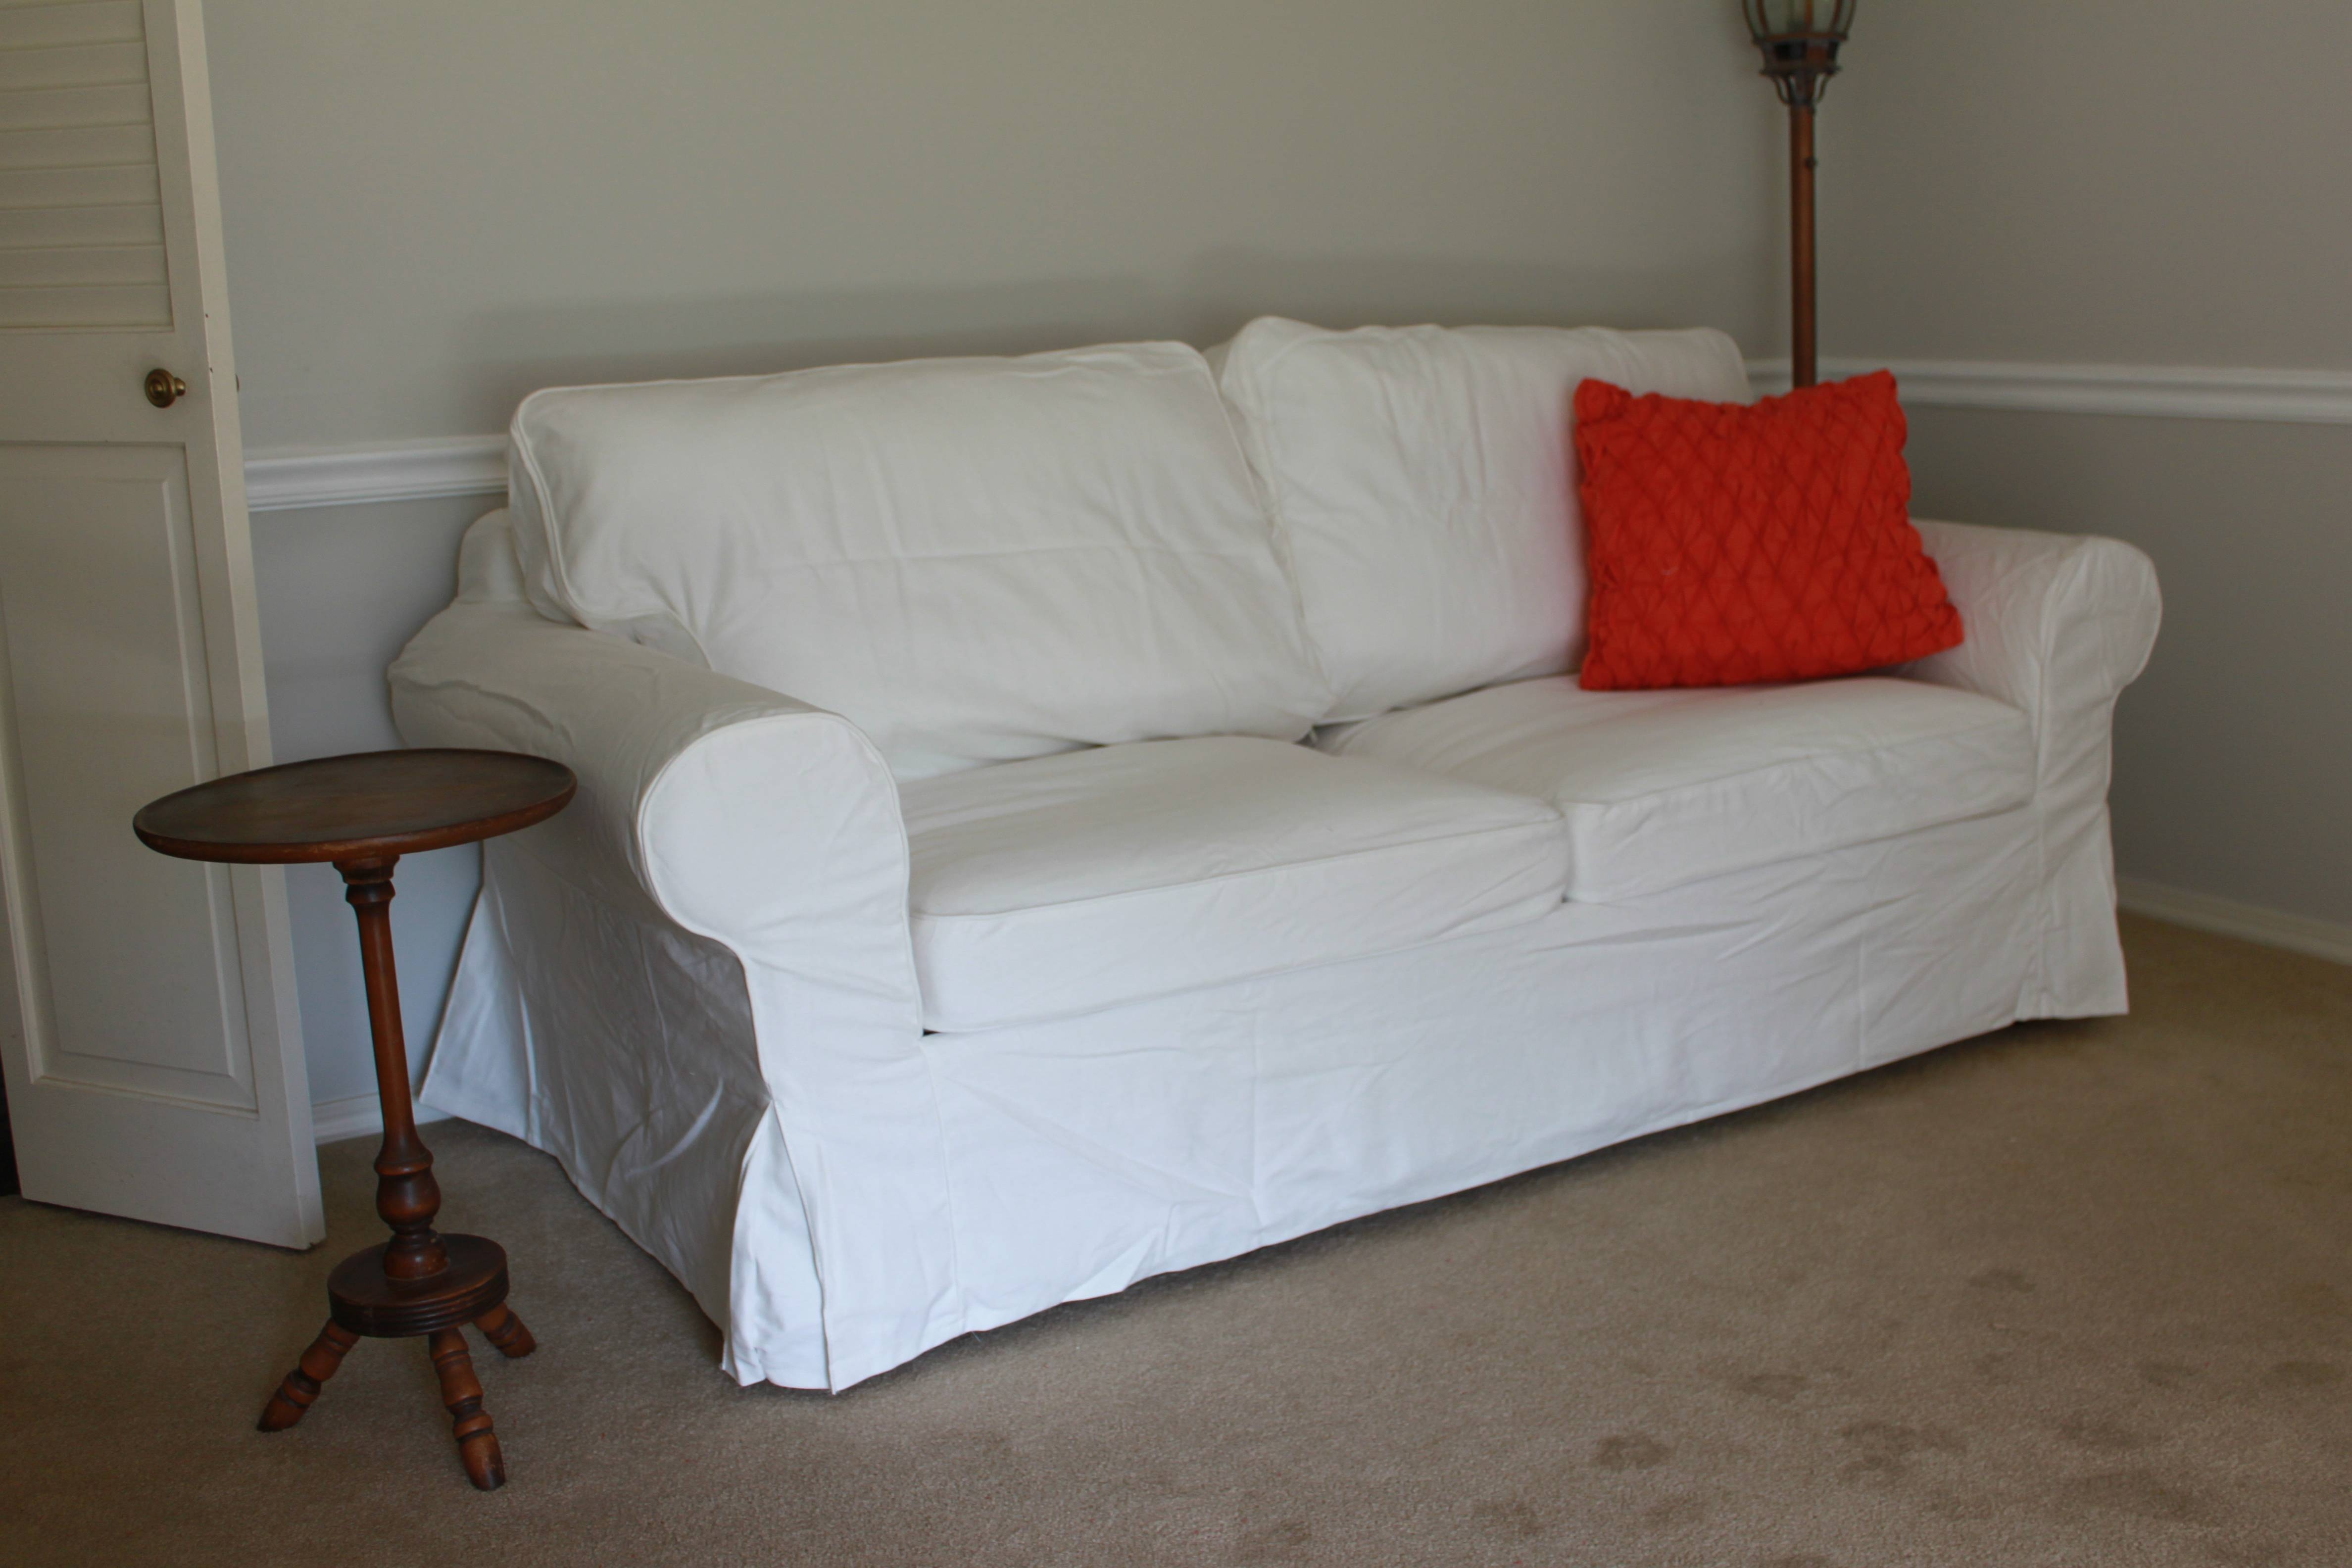 Washing Ektorp Sofas And Finding The Missing Cover | All Things Regarding Sleeper Sofa Slipcovers (View 11 of 15)